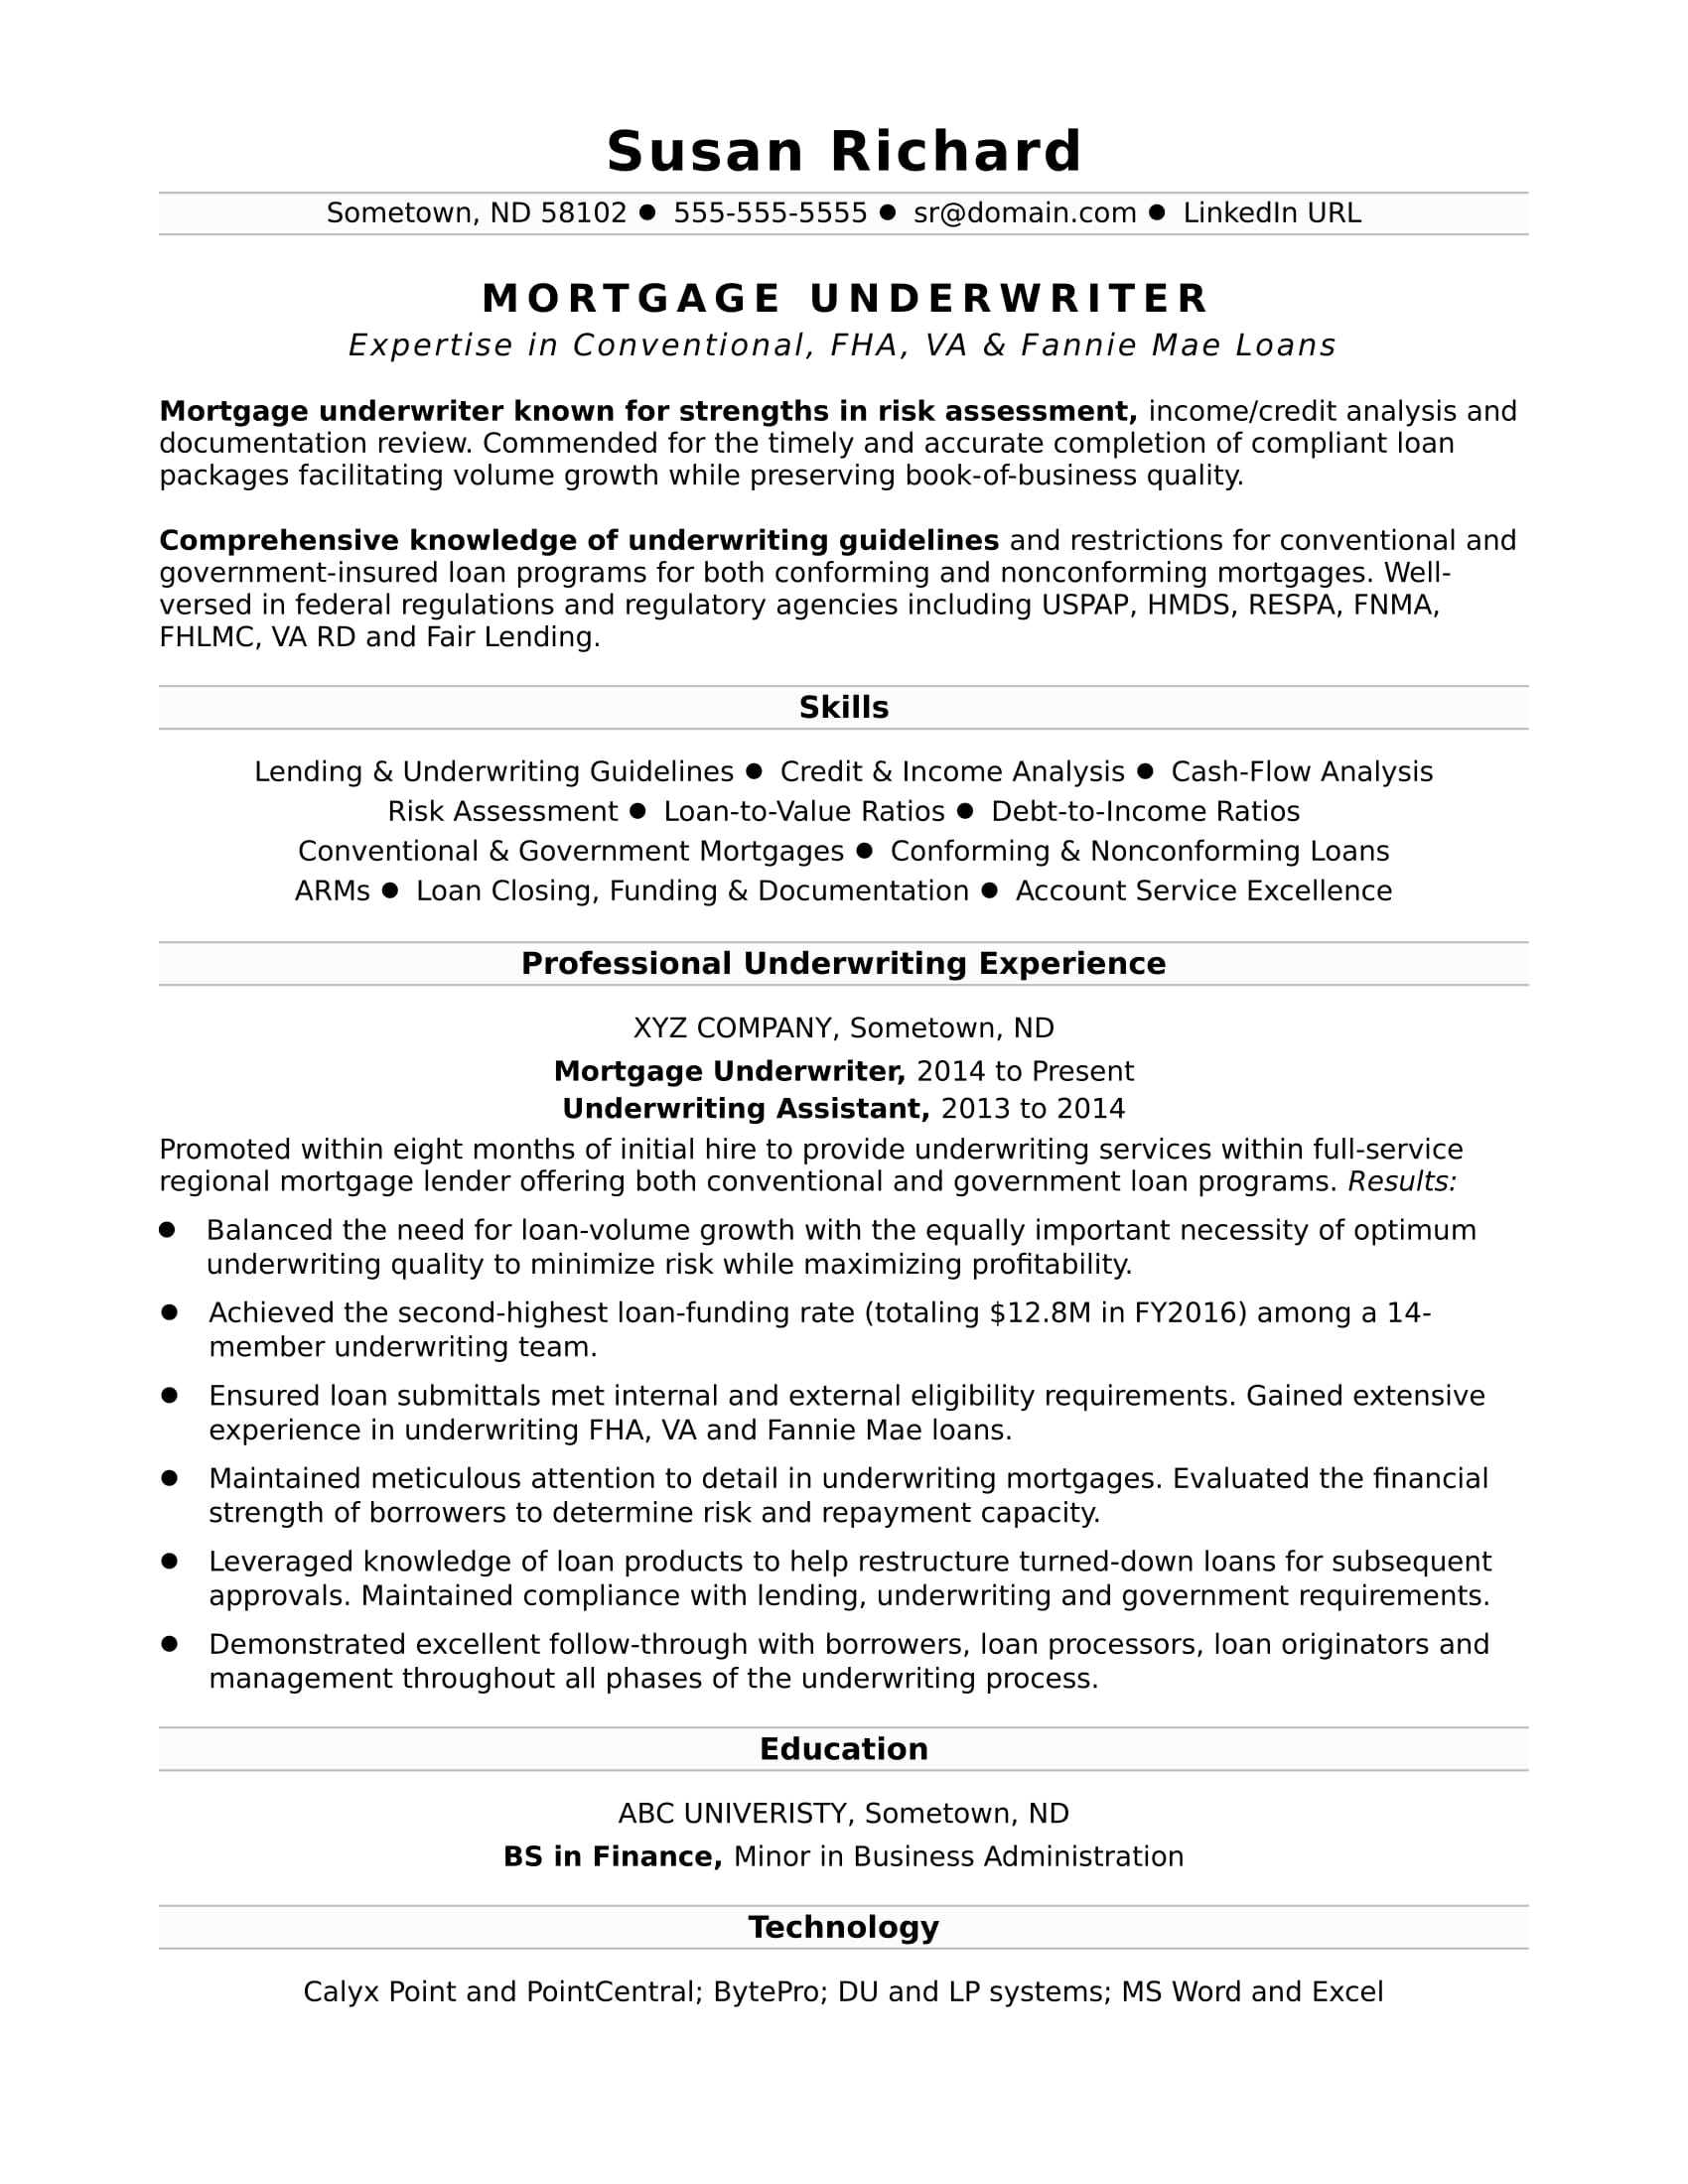 Rent Free Letter Template for Mortgage - Mortgage Underwriter Resume Sample